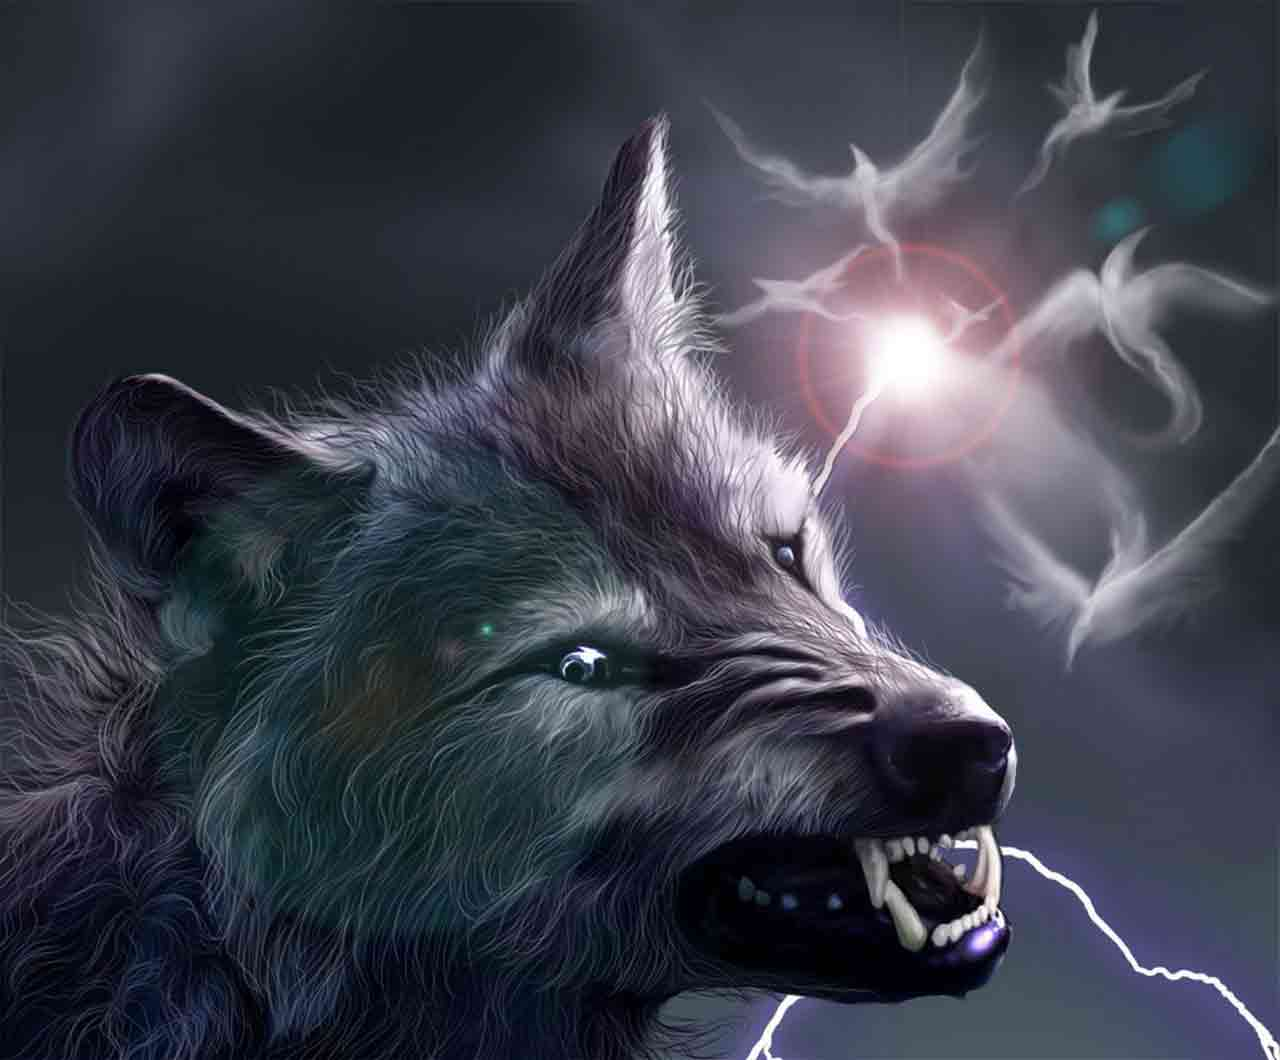 Mystical Wolf Wallpapers - Top Free Mystical Wolf